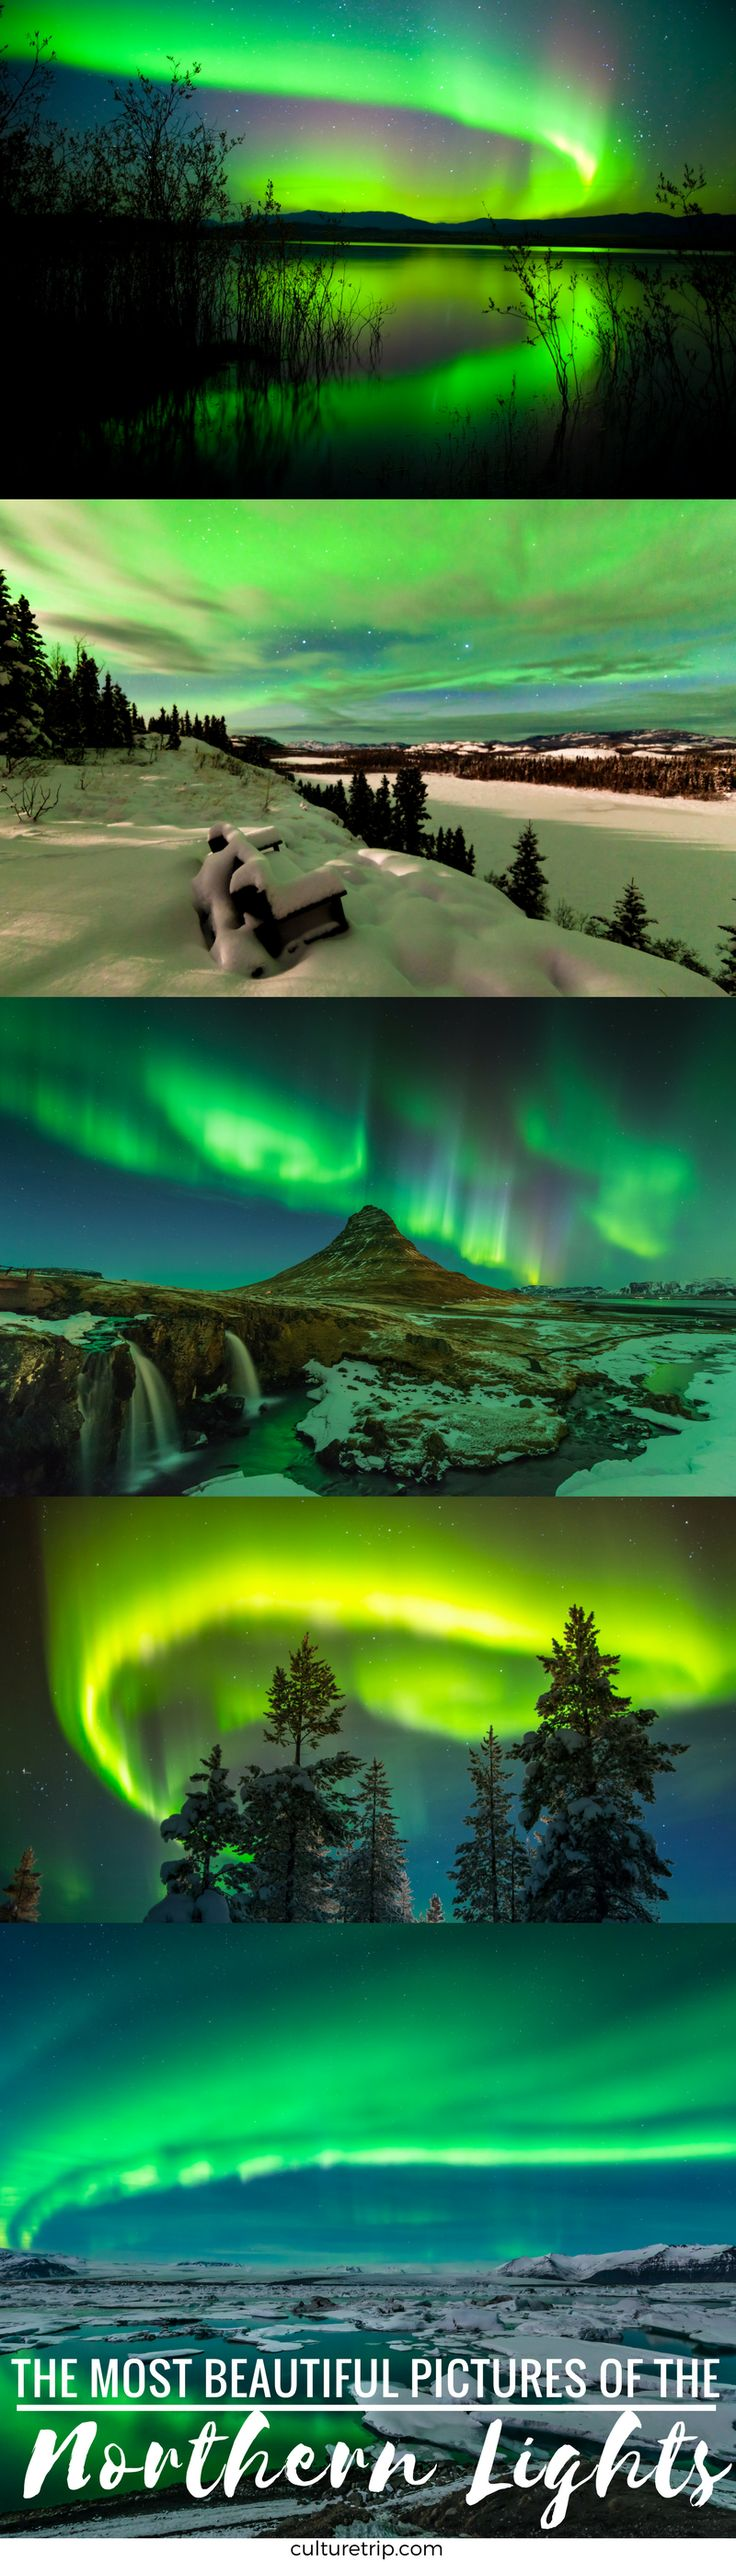 The Most Beautiful Pictures Of The Northern Lights